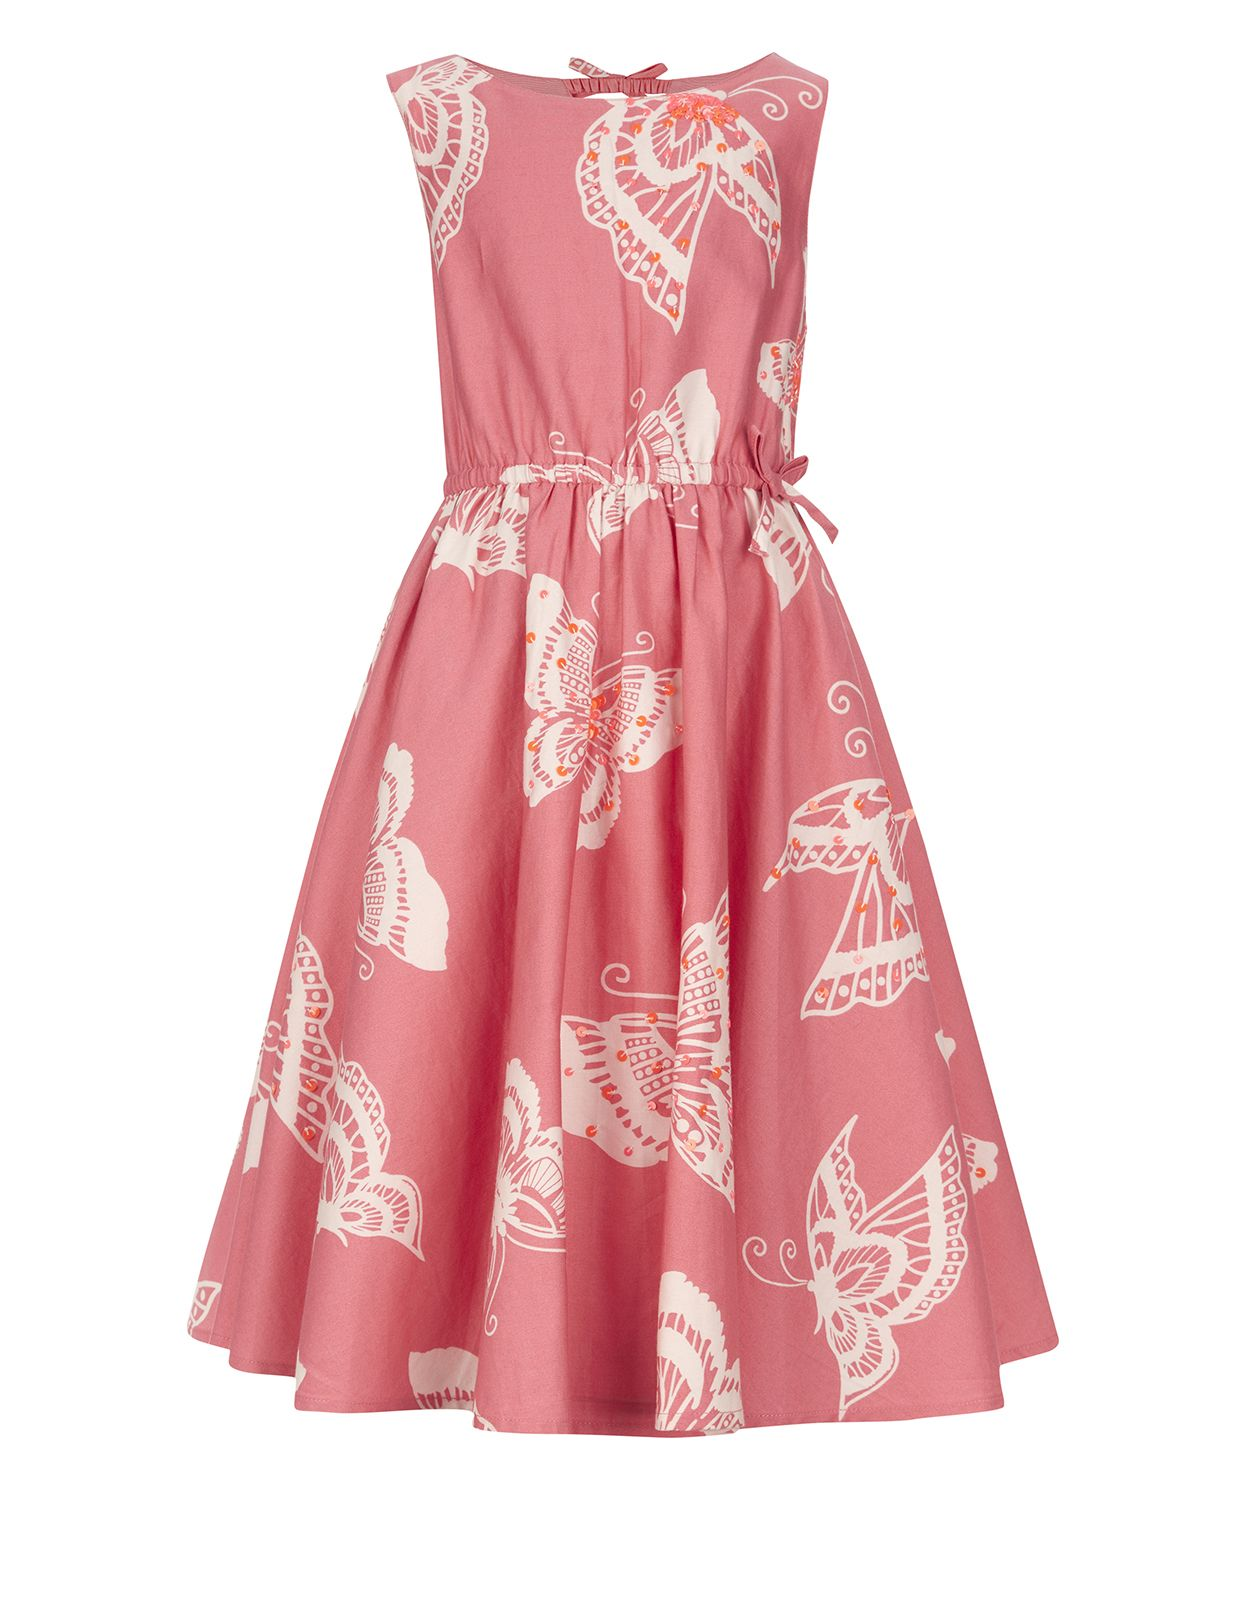 Flutura Butterfly Dress- for Easter? | jos style | Pinterest | Nena ...